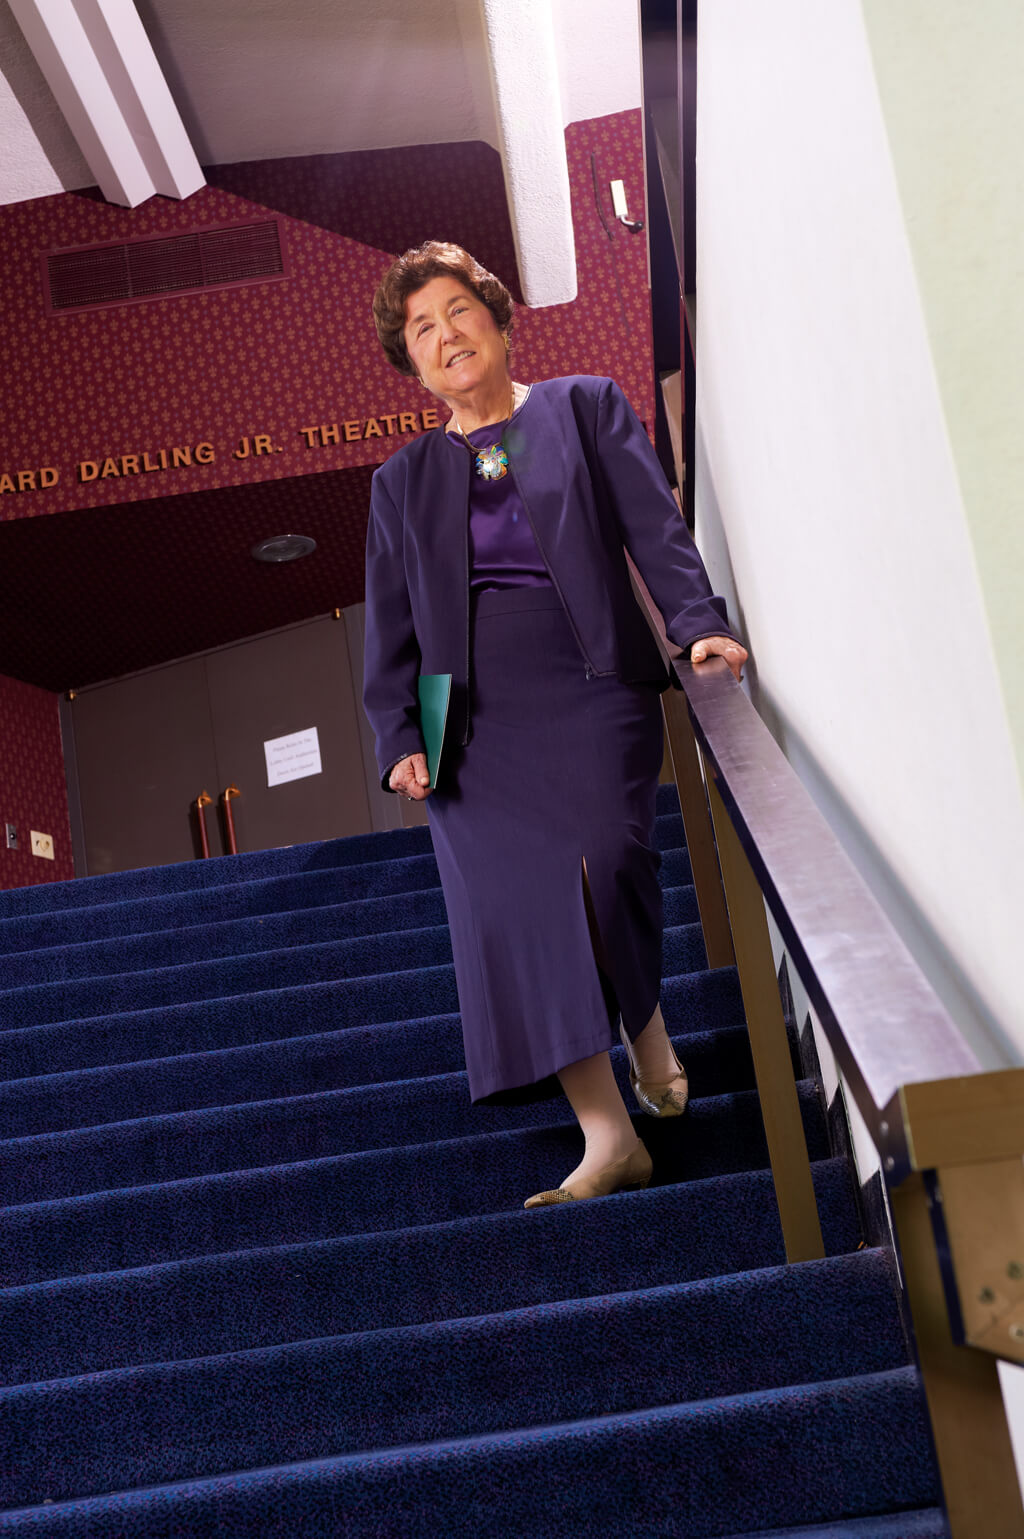 Esther standing in a purple dress on the stairs of the theater